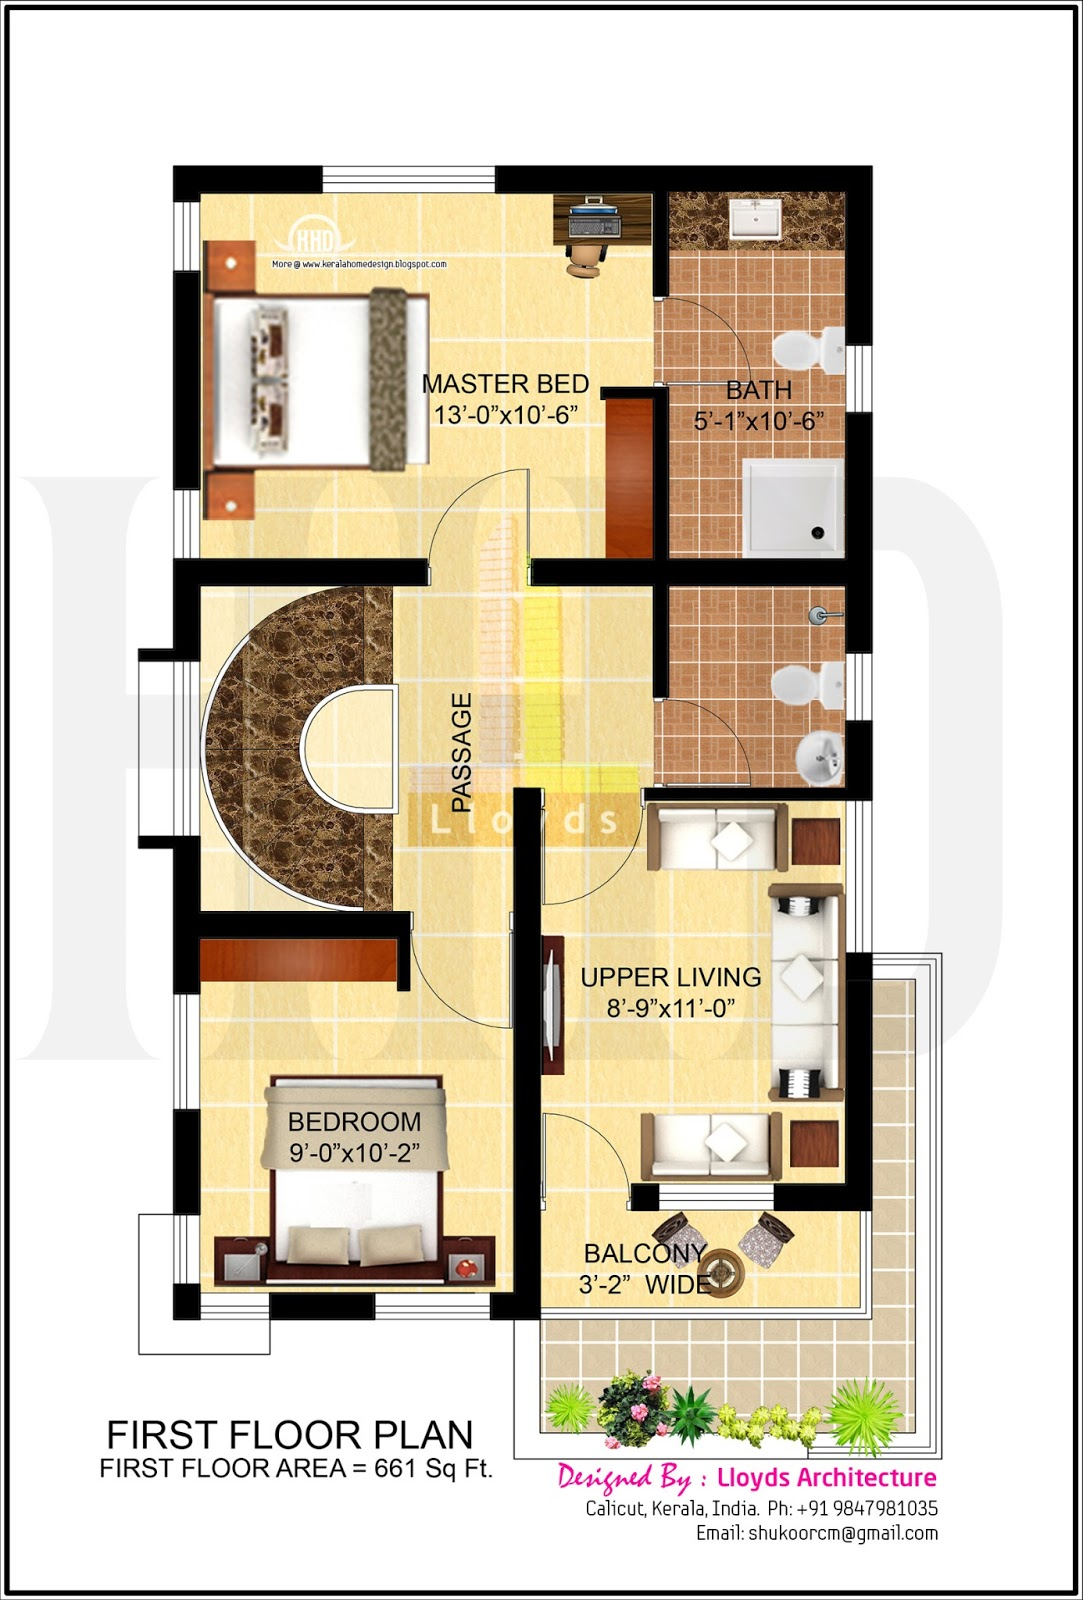 4 bedroom house plan in less than 3 cents kerala home for Kerala house plan images